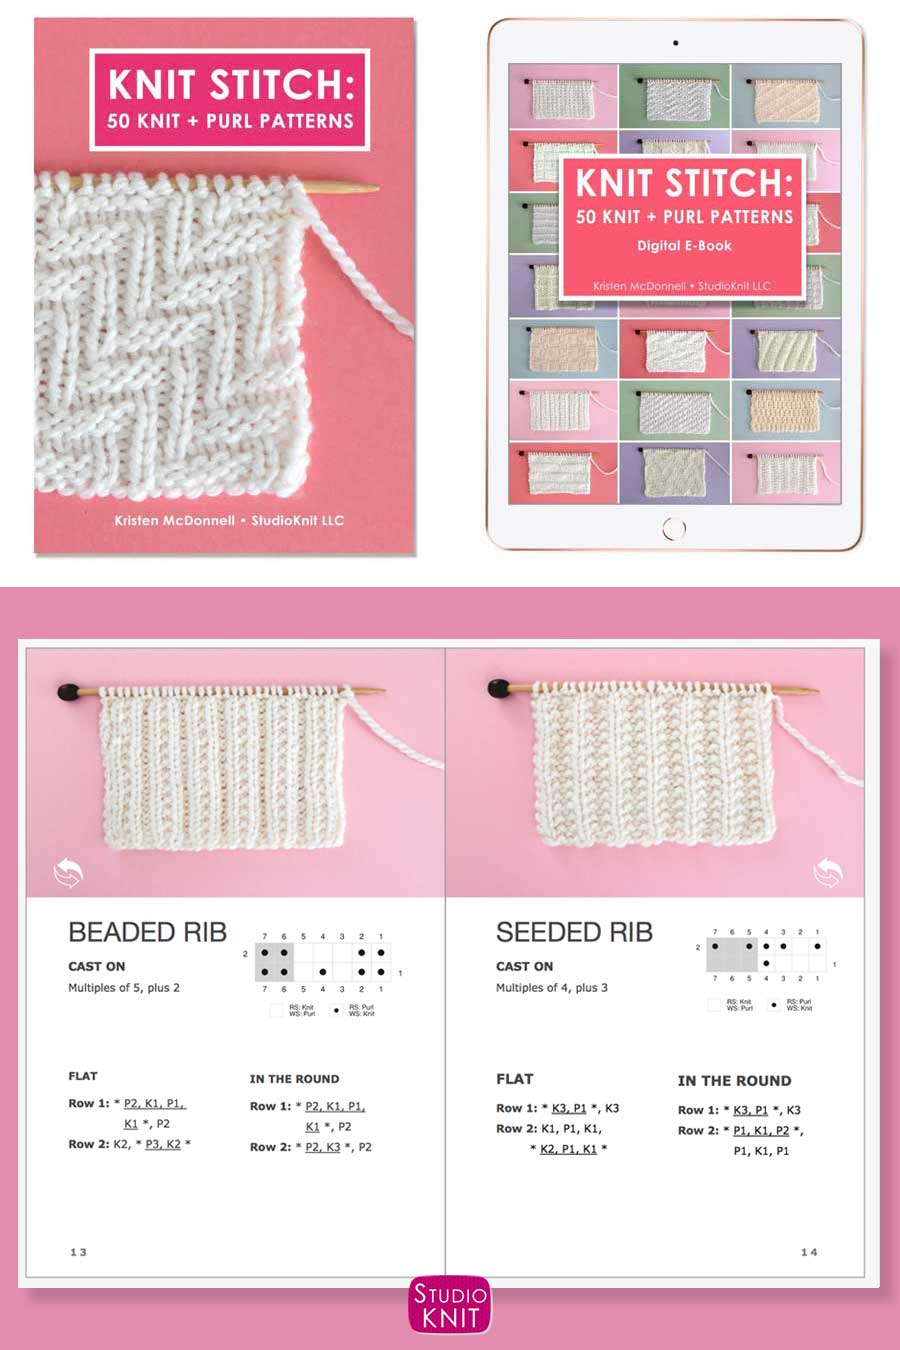 Knit Stitch Pattern Book with Beaded Rib and Seeded Rib Stitch Patterns